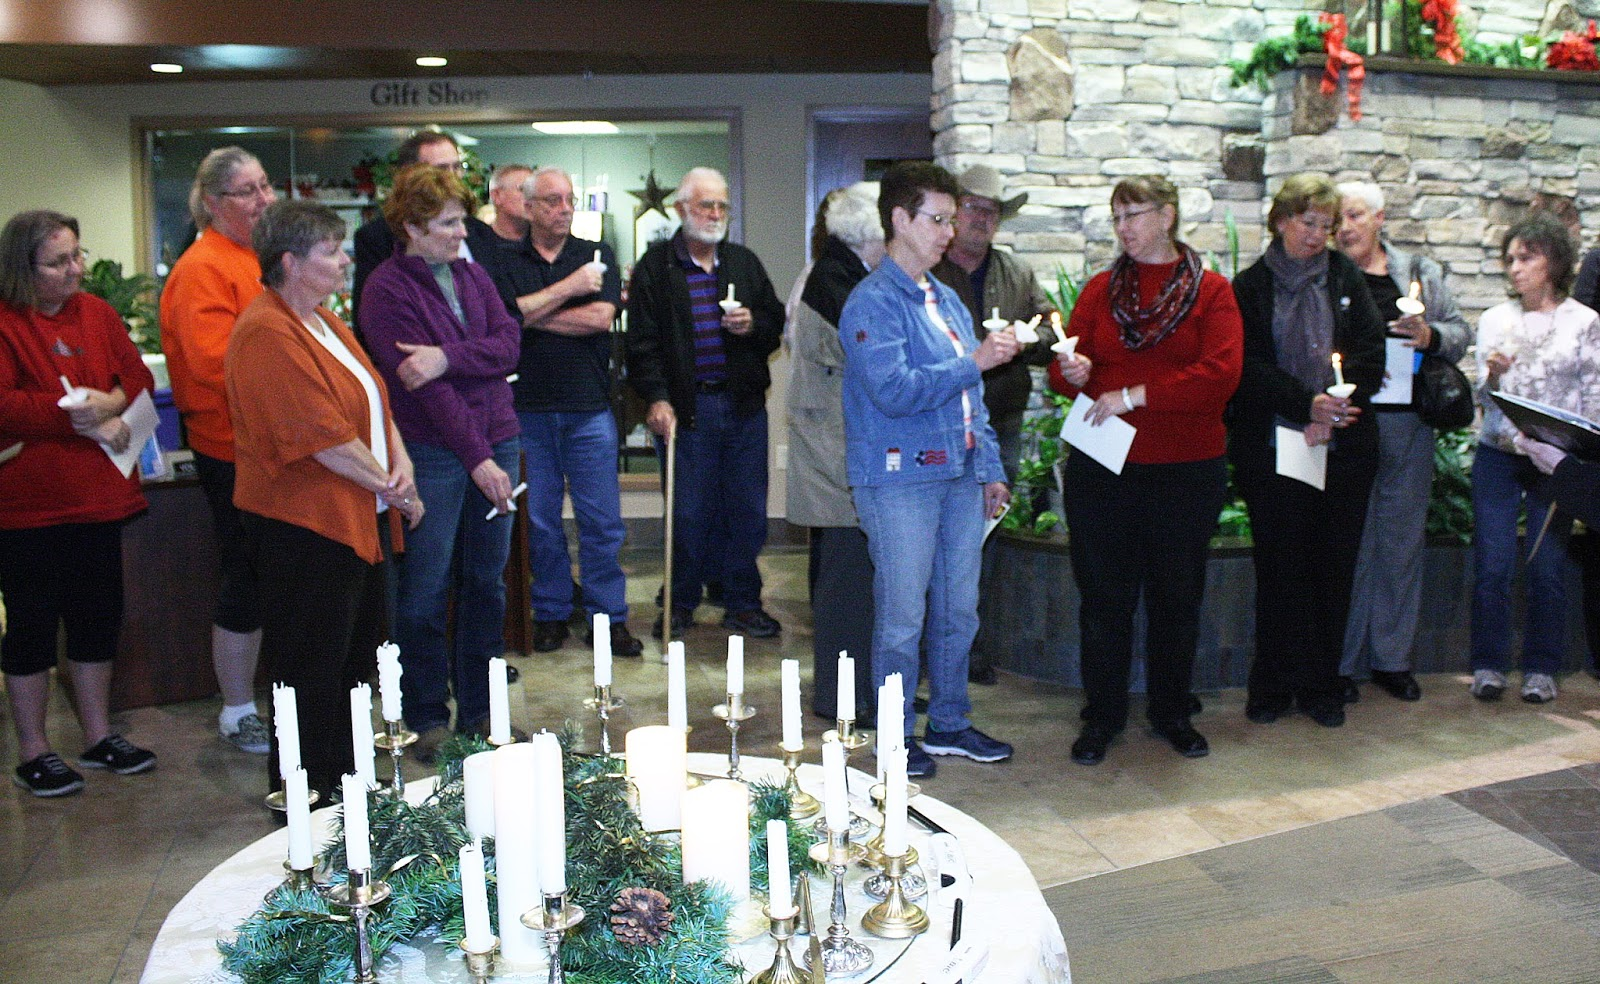 Kansas dickinson county abilene - Hospice Of Dickinson County Sponsored A Community Candle Lighting Memorial Service During Which Participants Were Invited To Honor Loved Ones